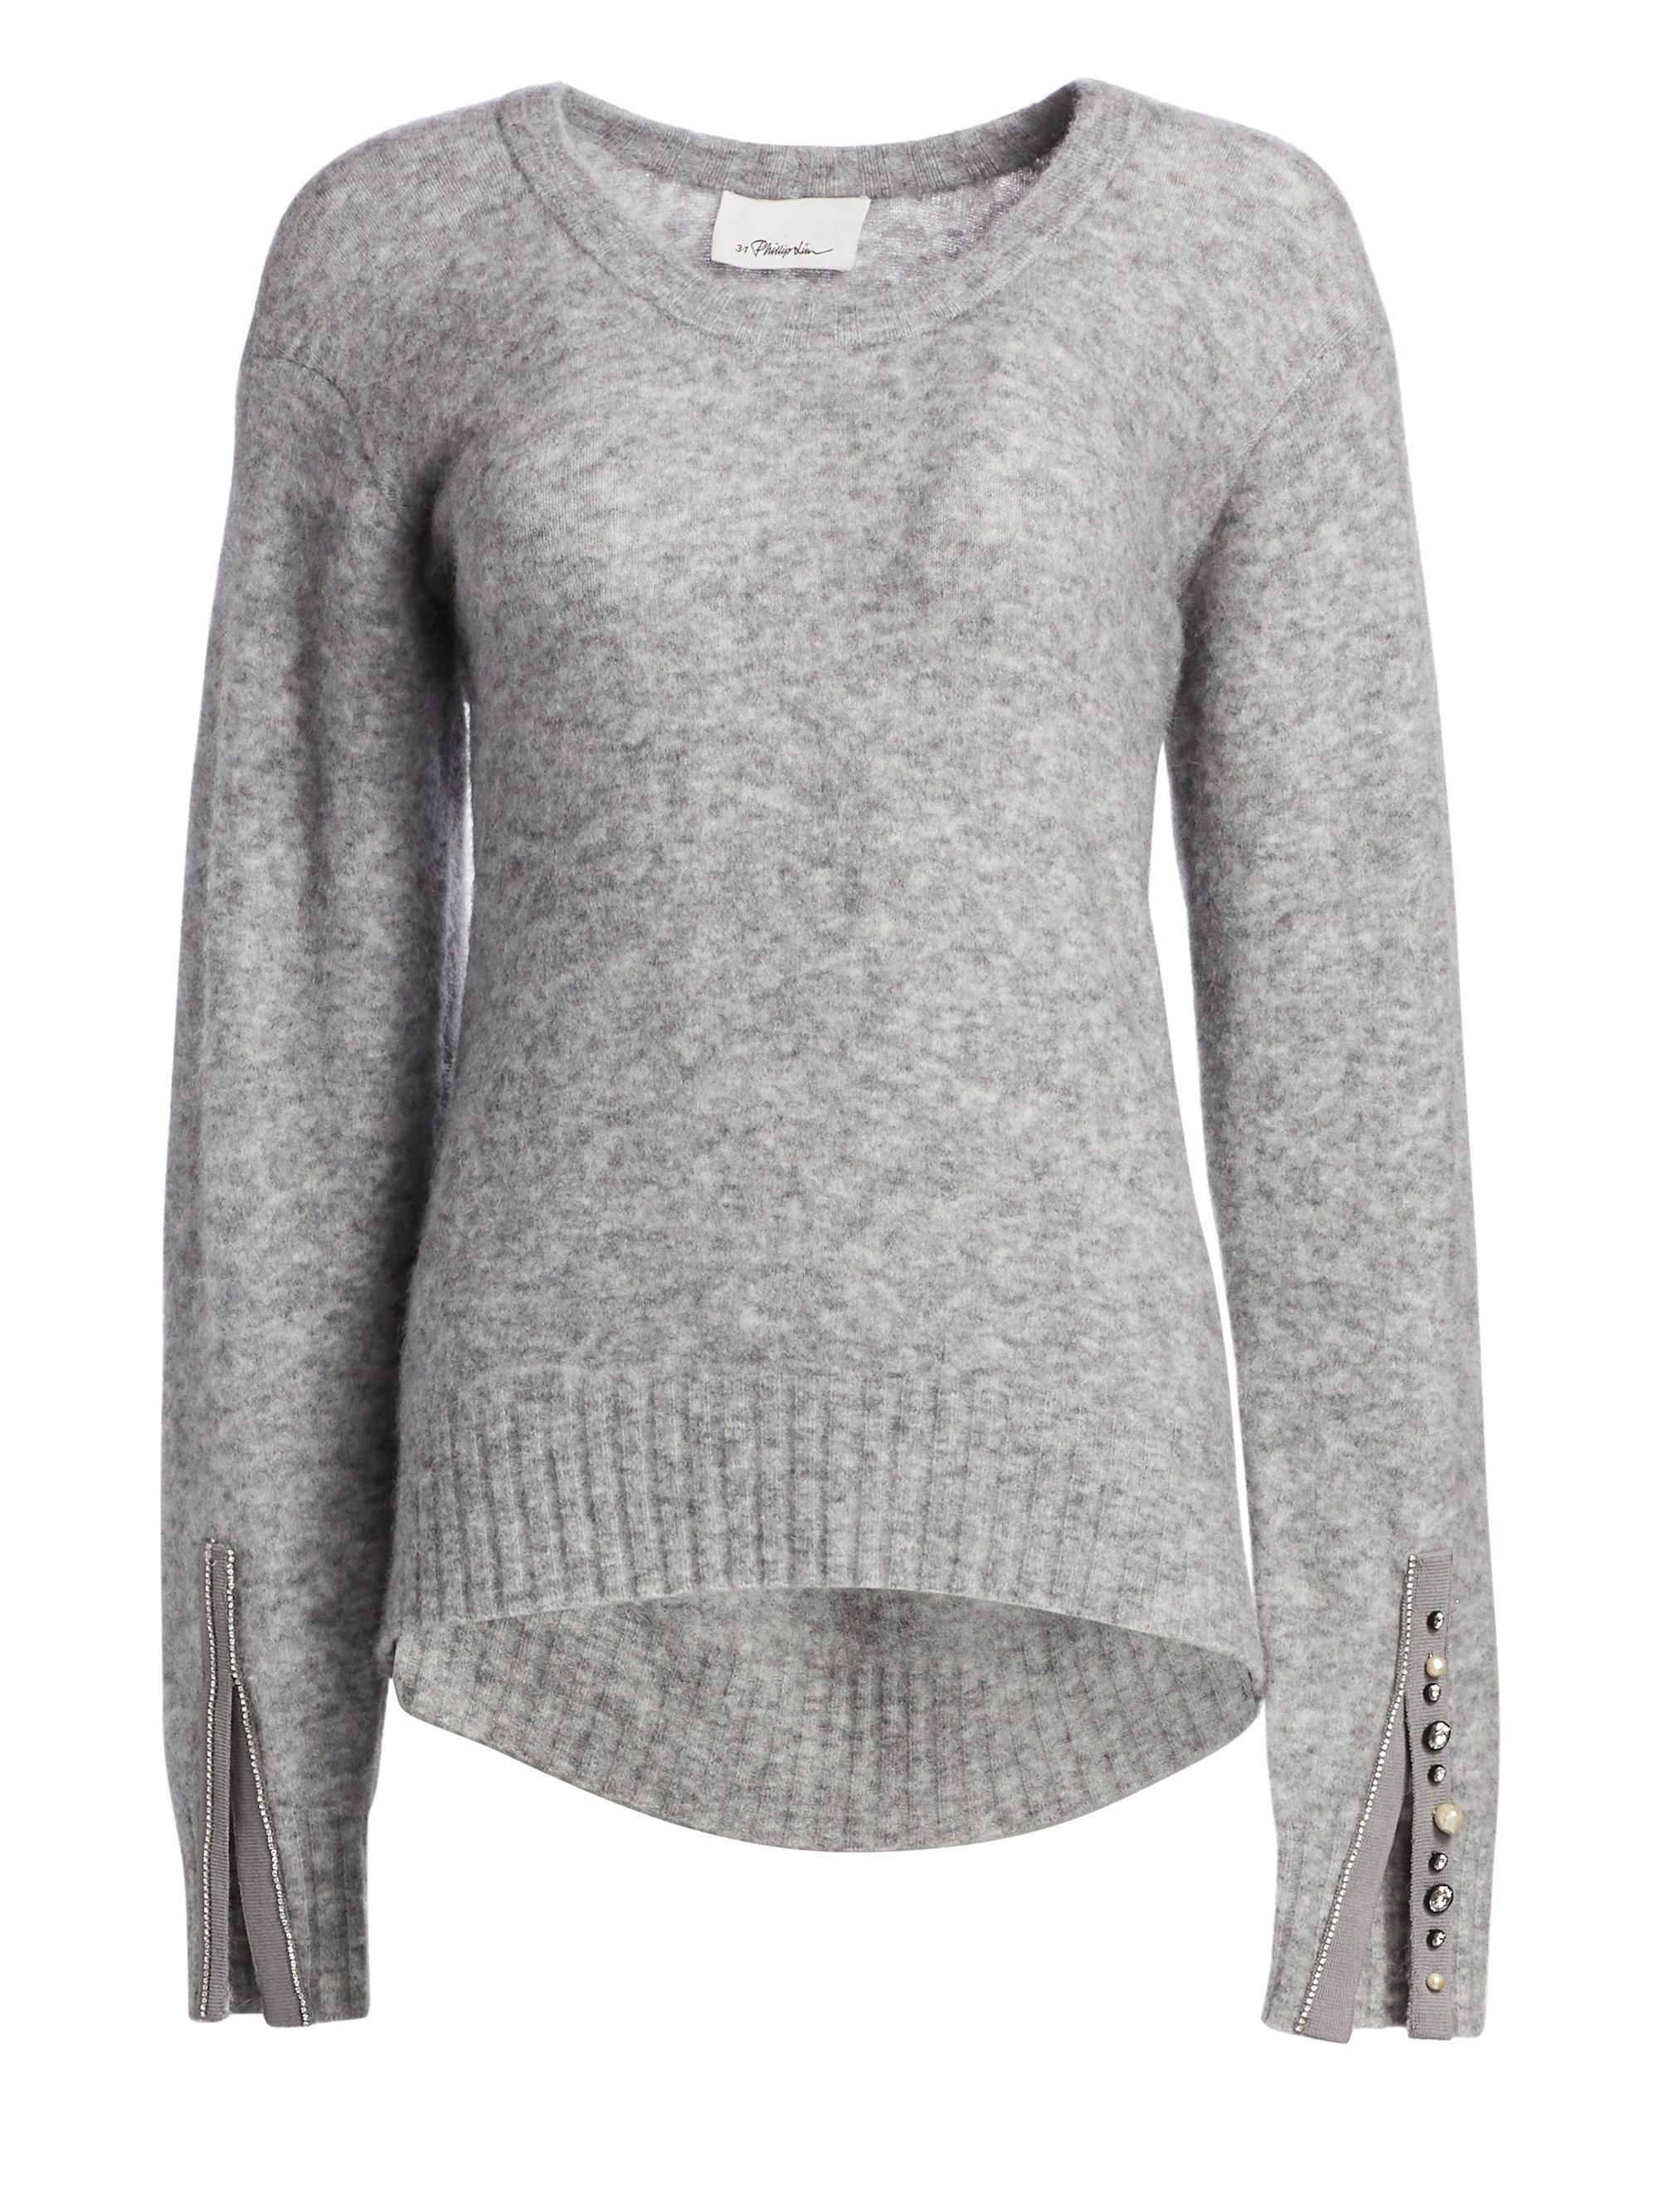 3.1 Phillip Lim. Women s Gray Embellished Split-cuff Roundneck Alpaca  Sweater.  495  297 From Saks Fifth Avenue f93771693